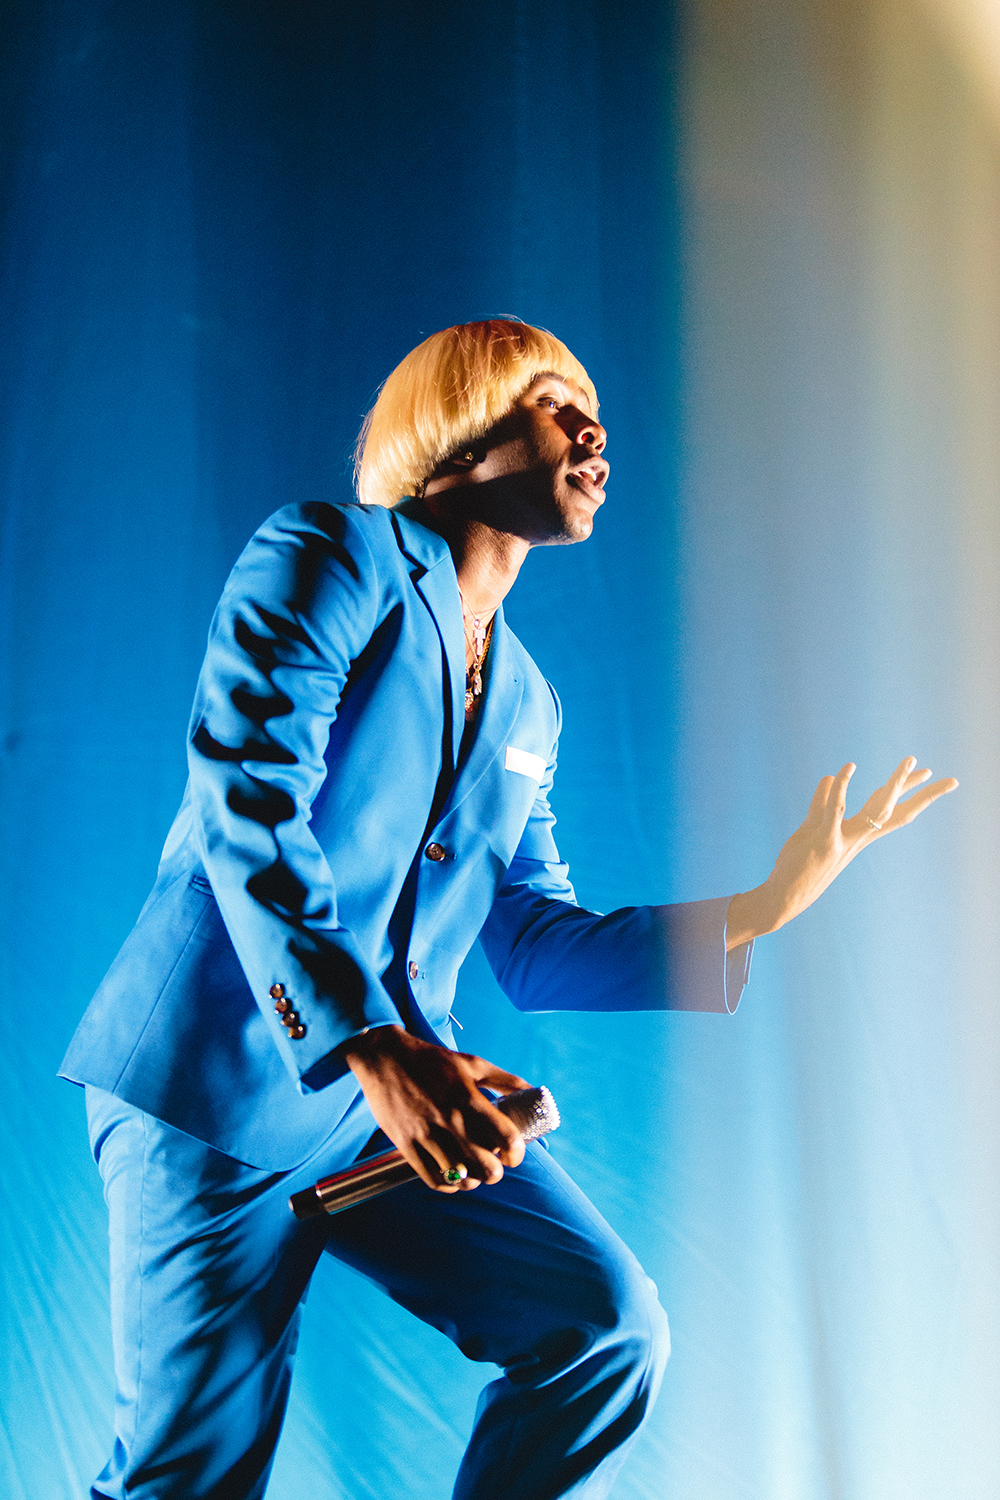 Tyler+surprised+his+longtime+fans+by+performing+%22Yonkers%22+and+%22She%22+from+the+album+%22Goblin.%22